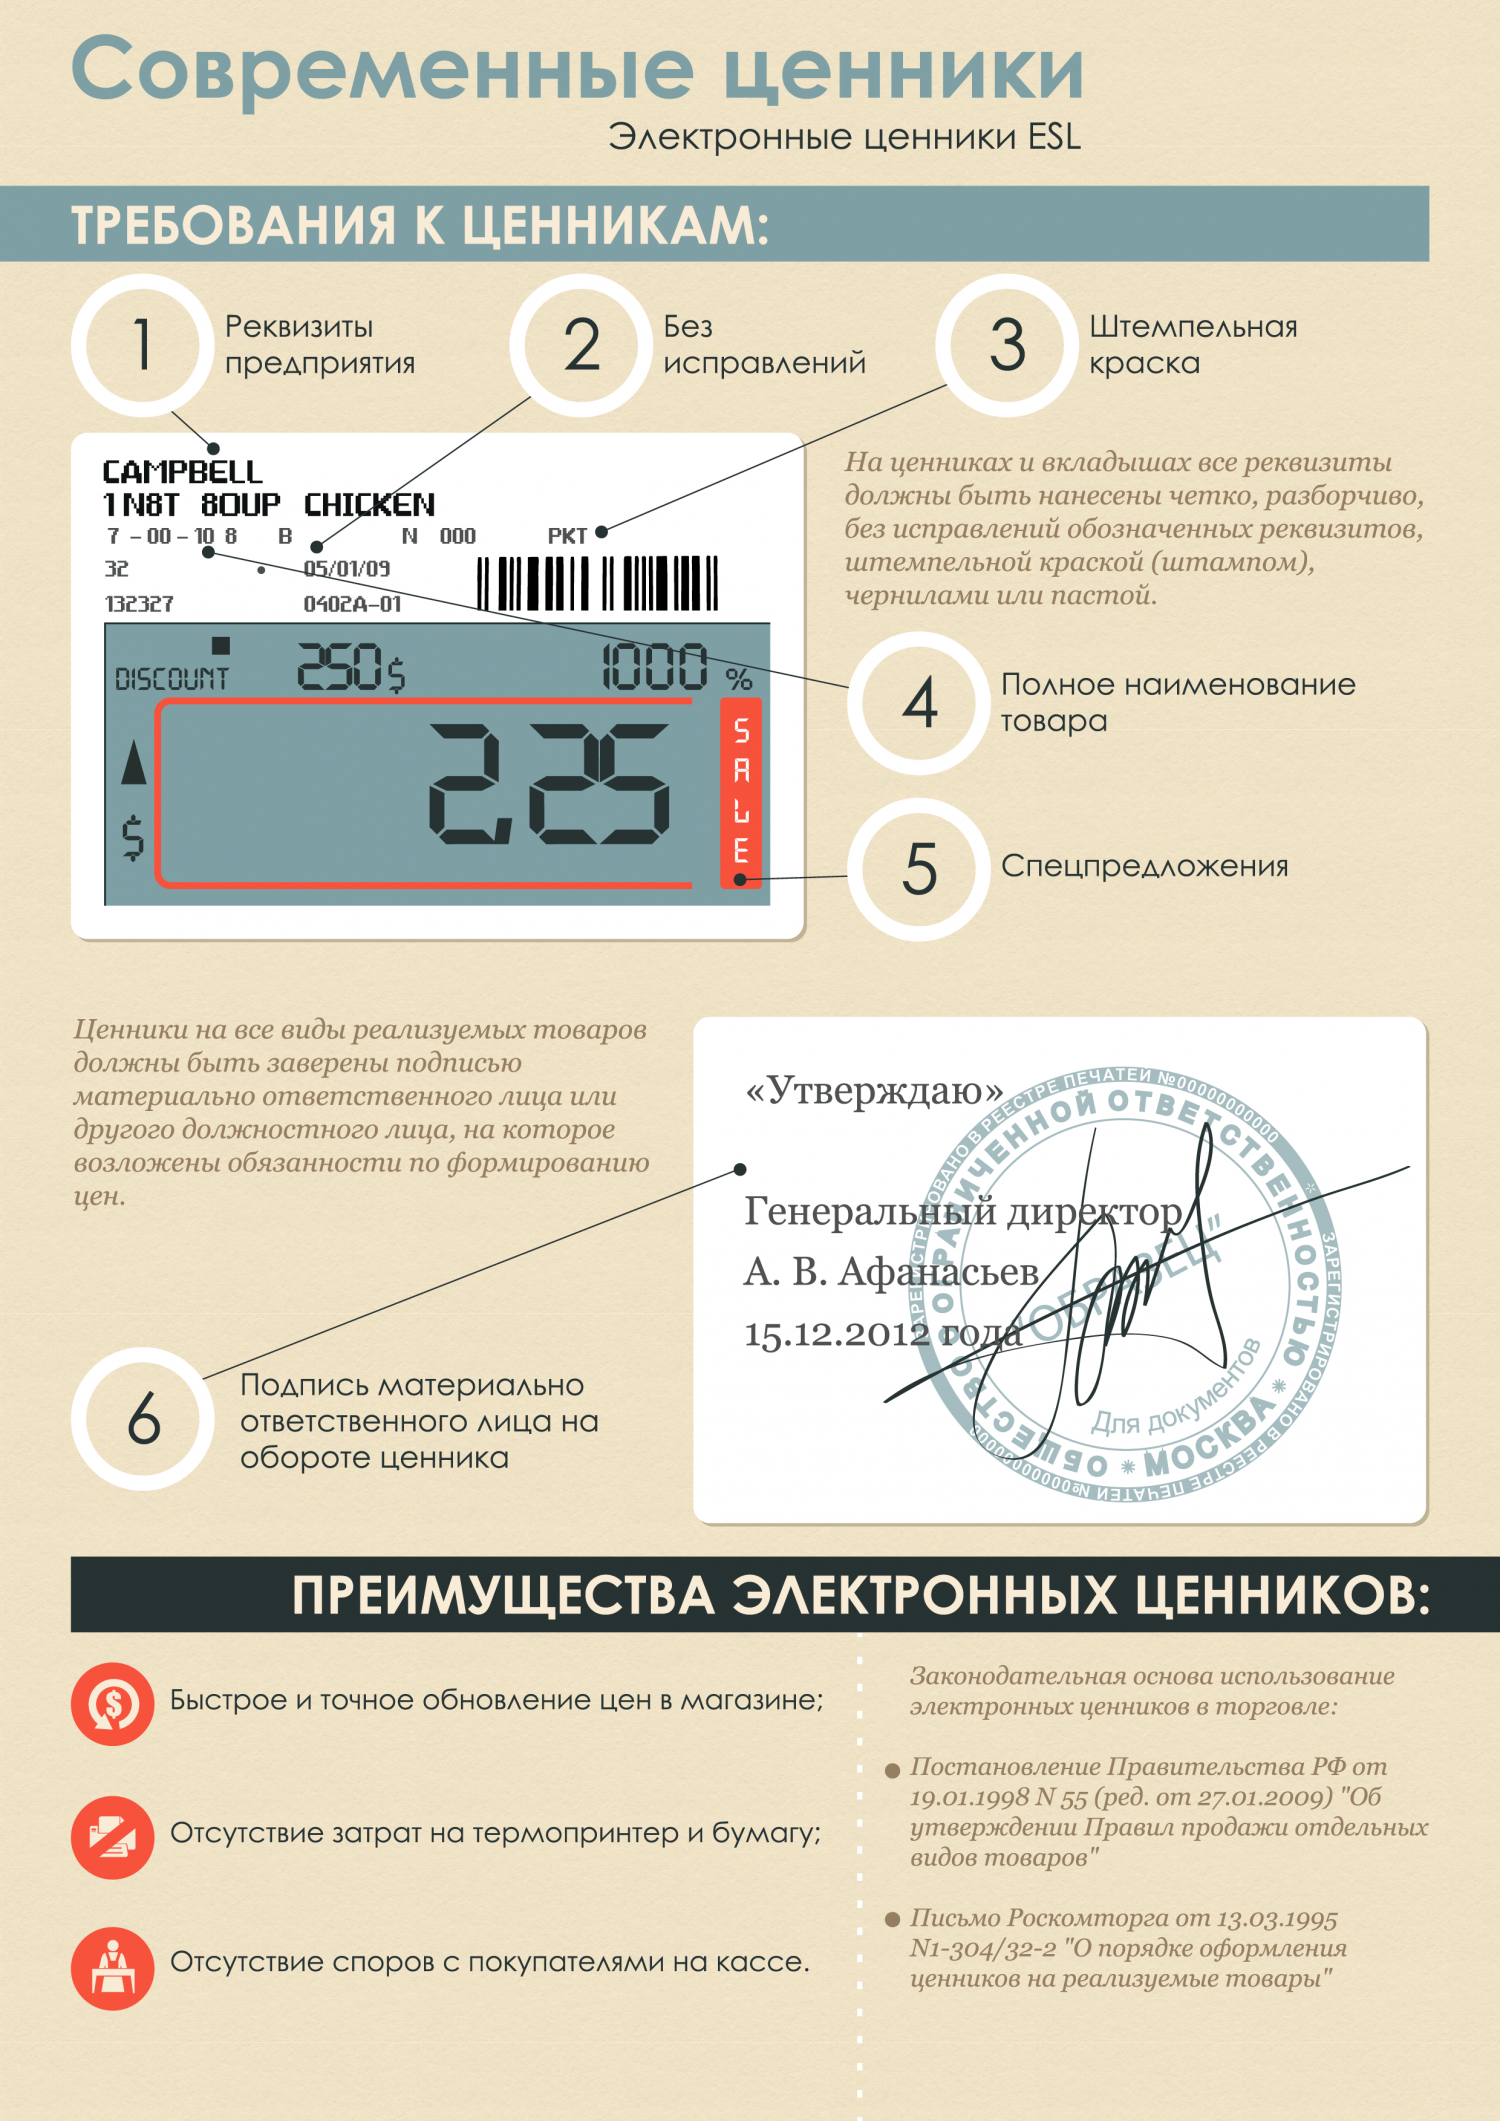 Electronic Price Infographic